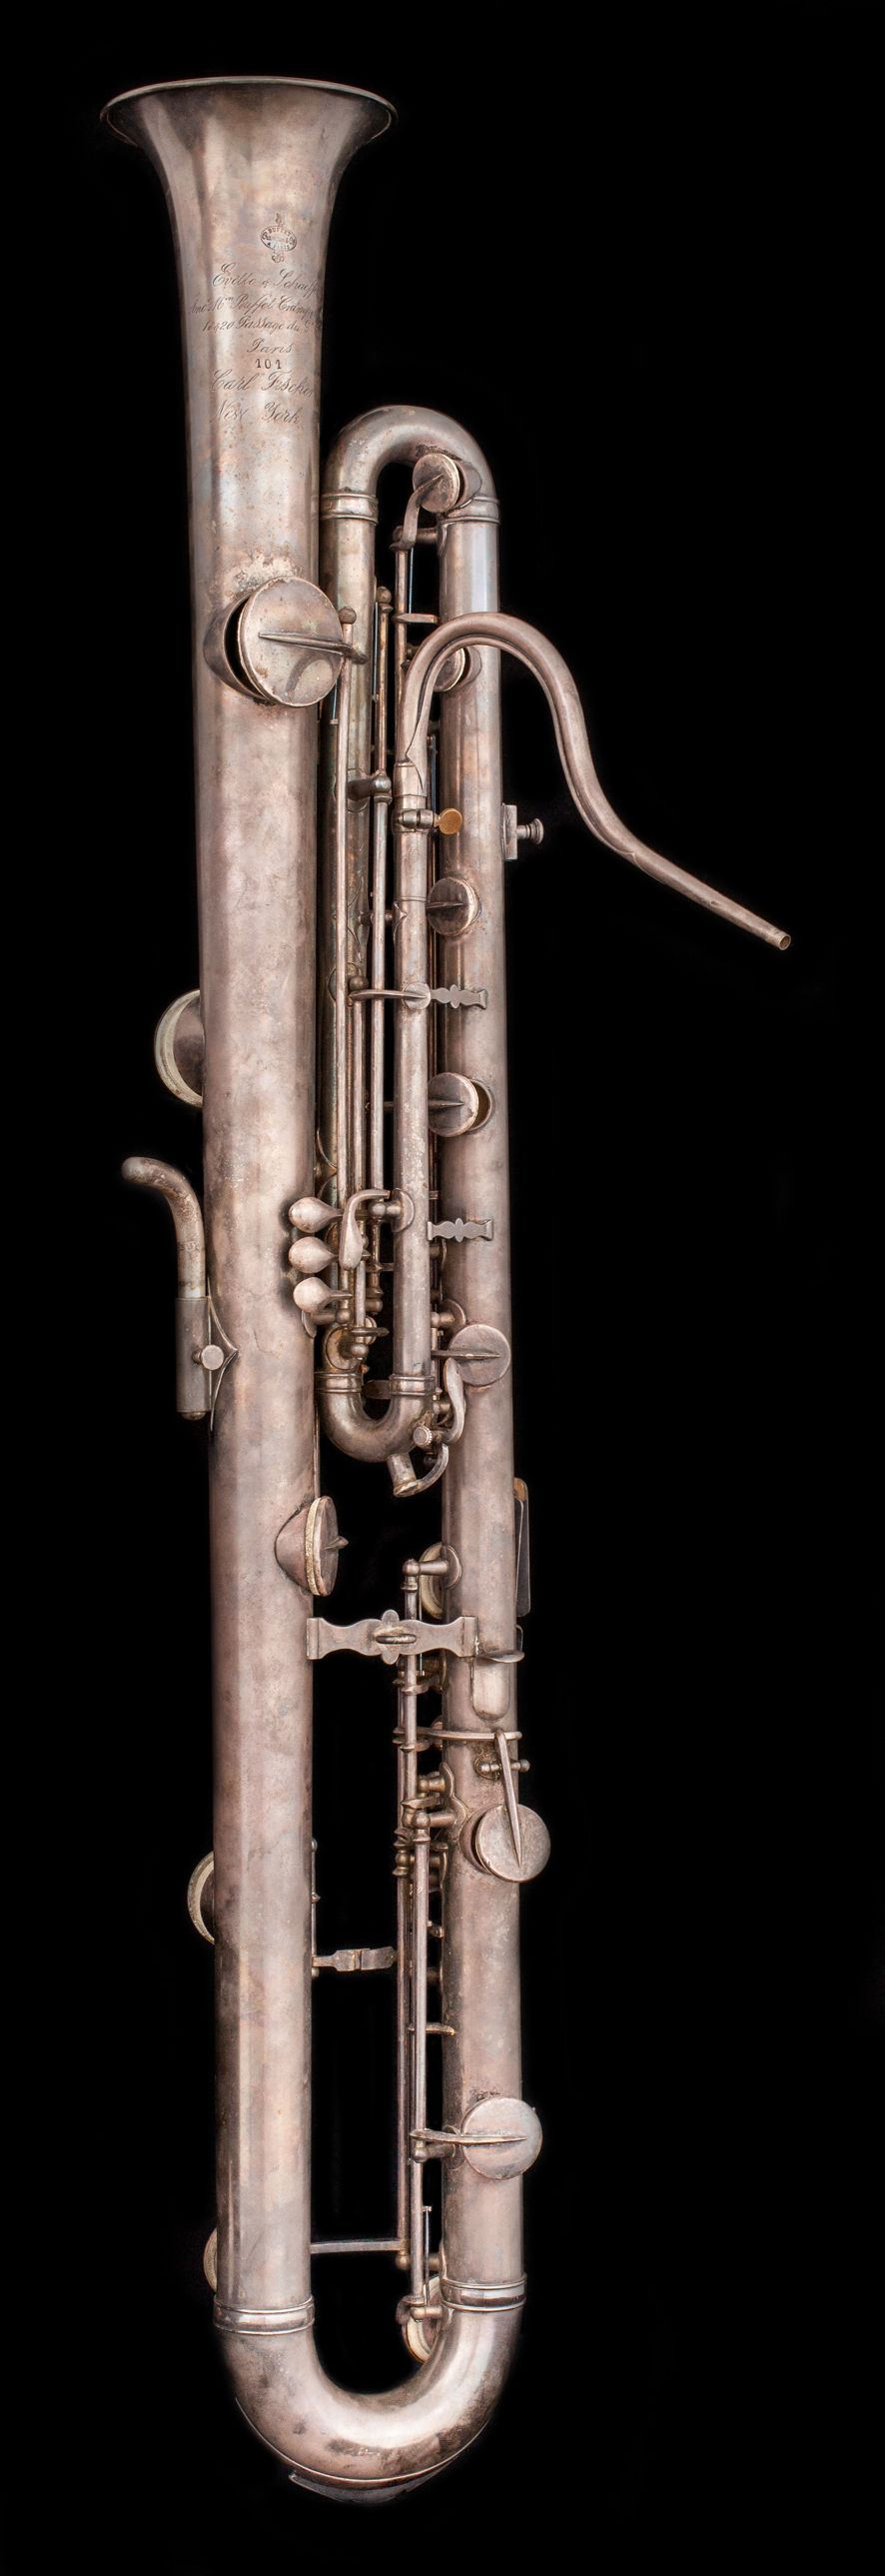 Silver instrument with keys, similar to saxophone, but with bell facing upwards.